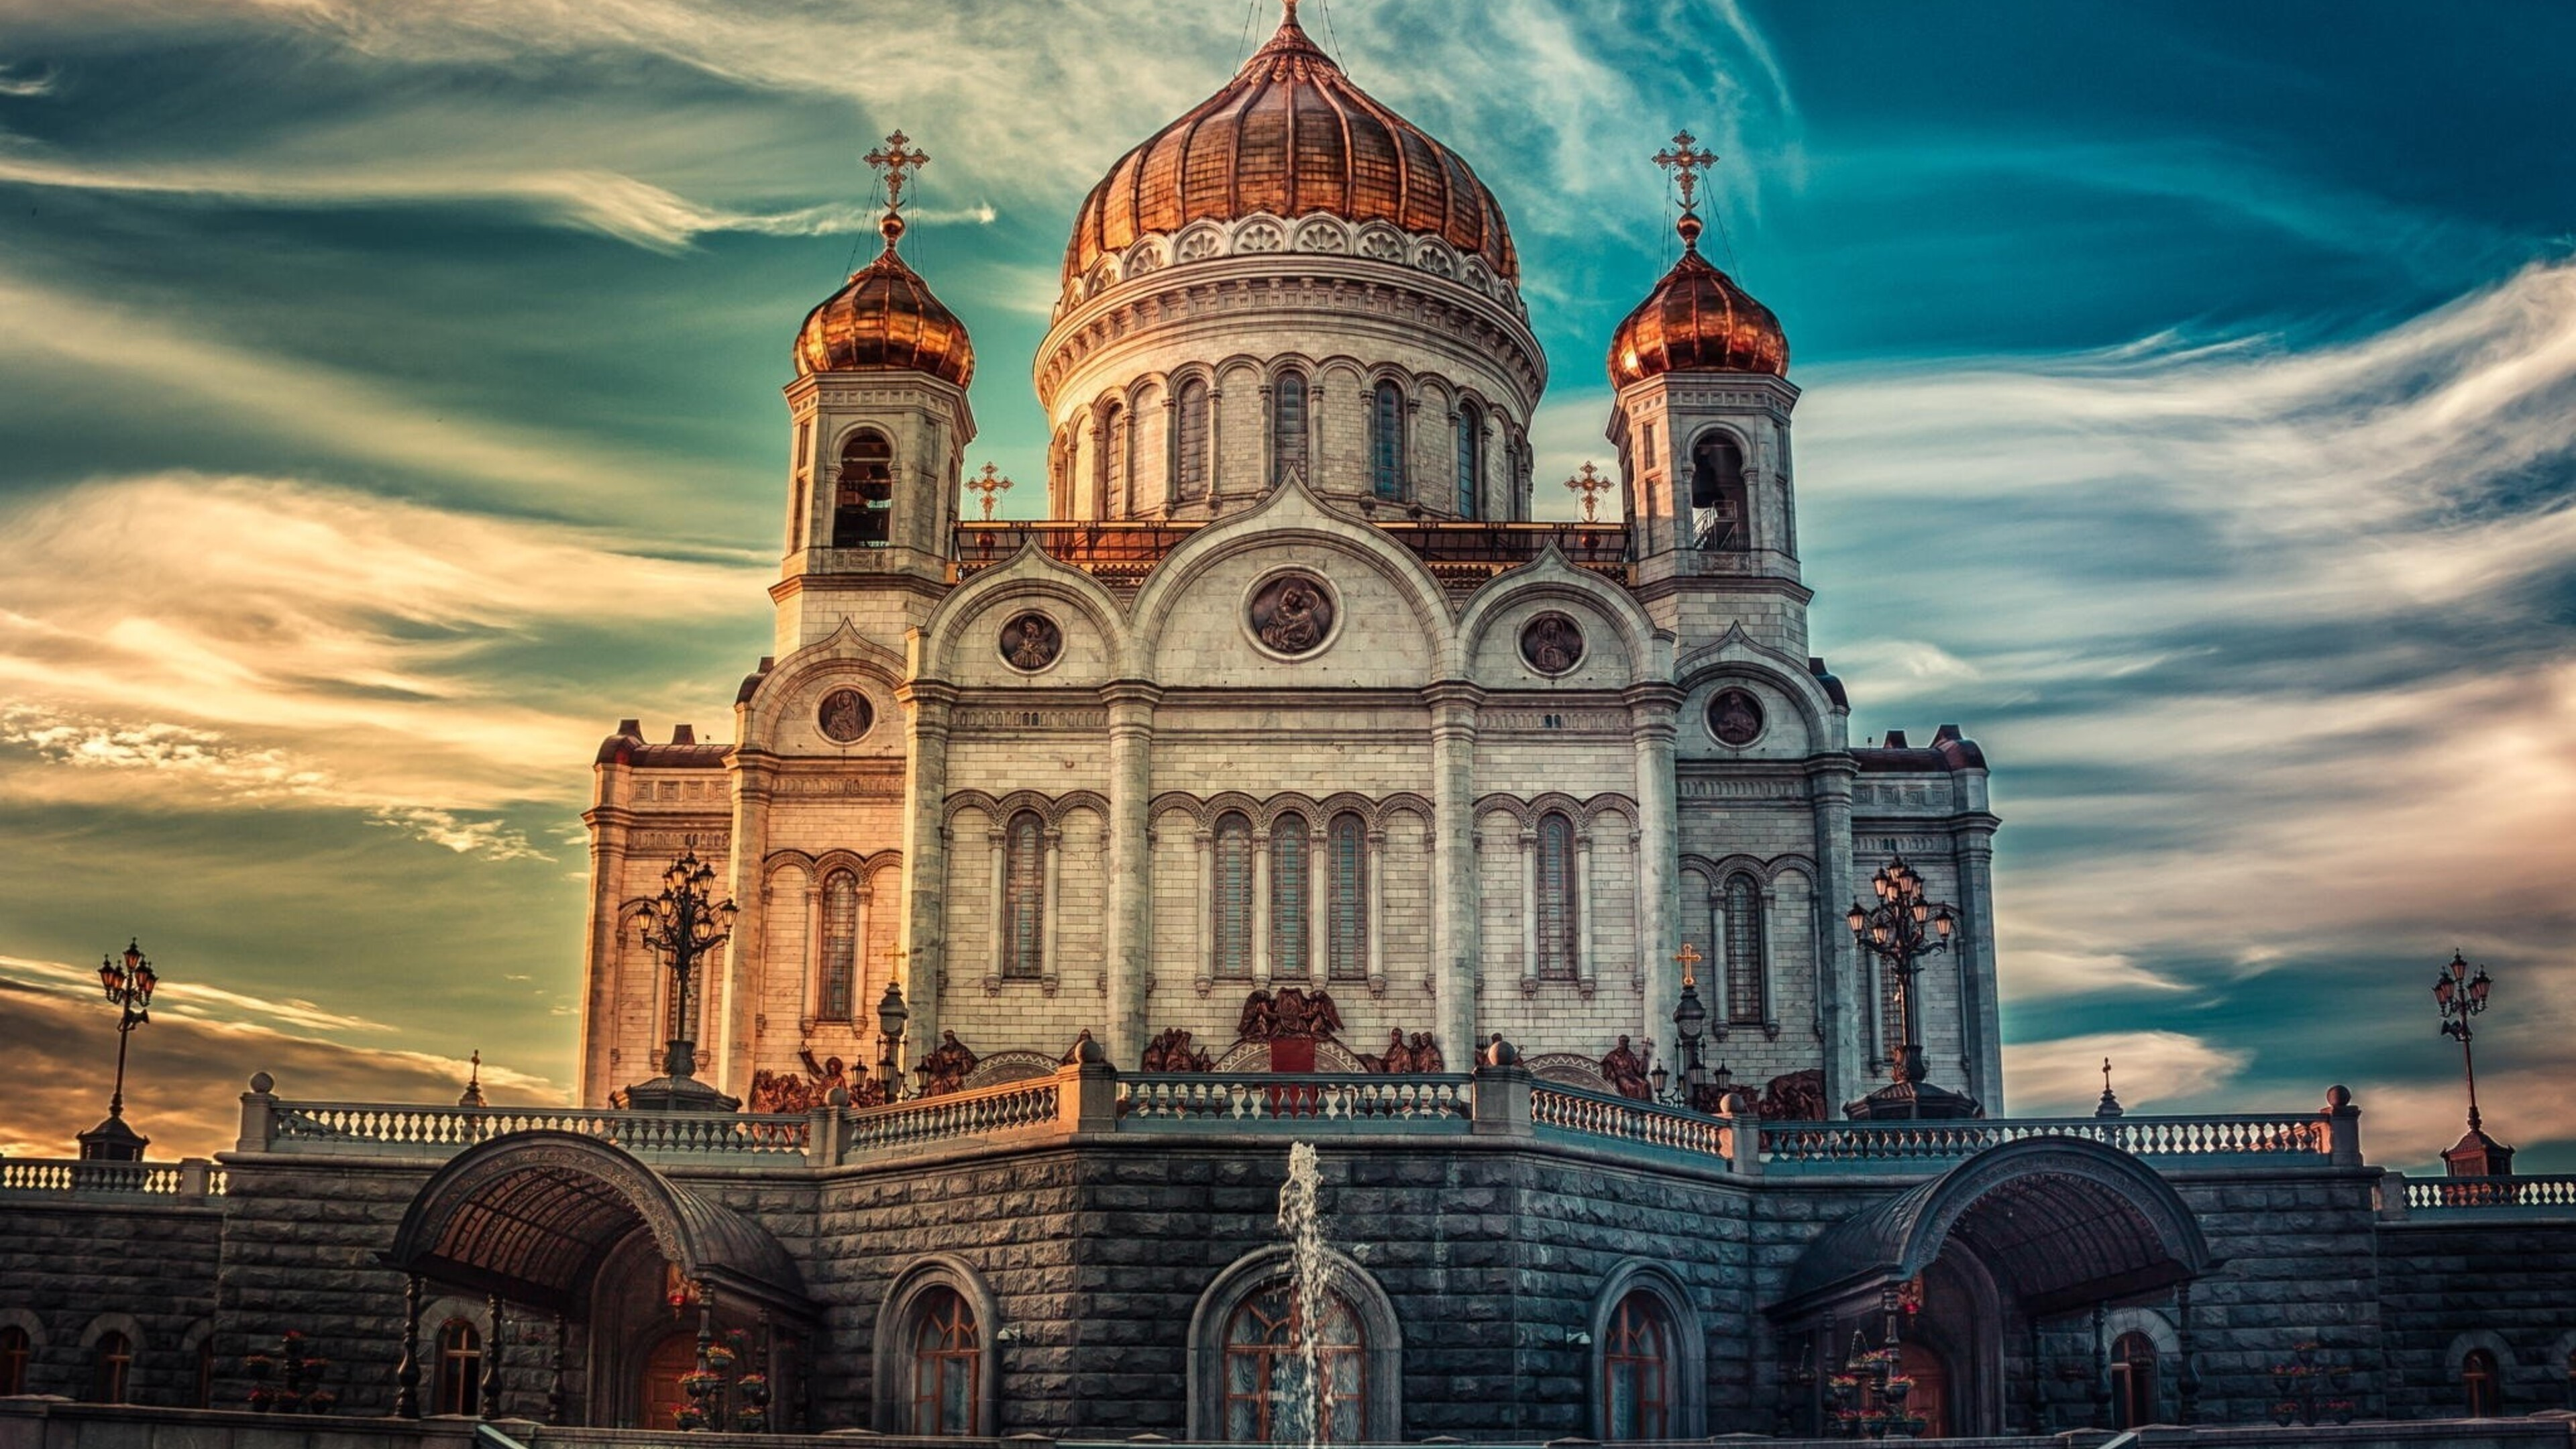 Beautiful Hd 3d Flowers Wallpapers 3840x2160 Cathedral Of Christ The Savior In Russia 4k Hd